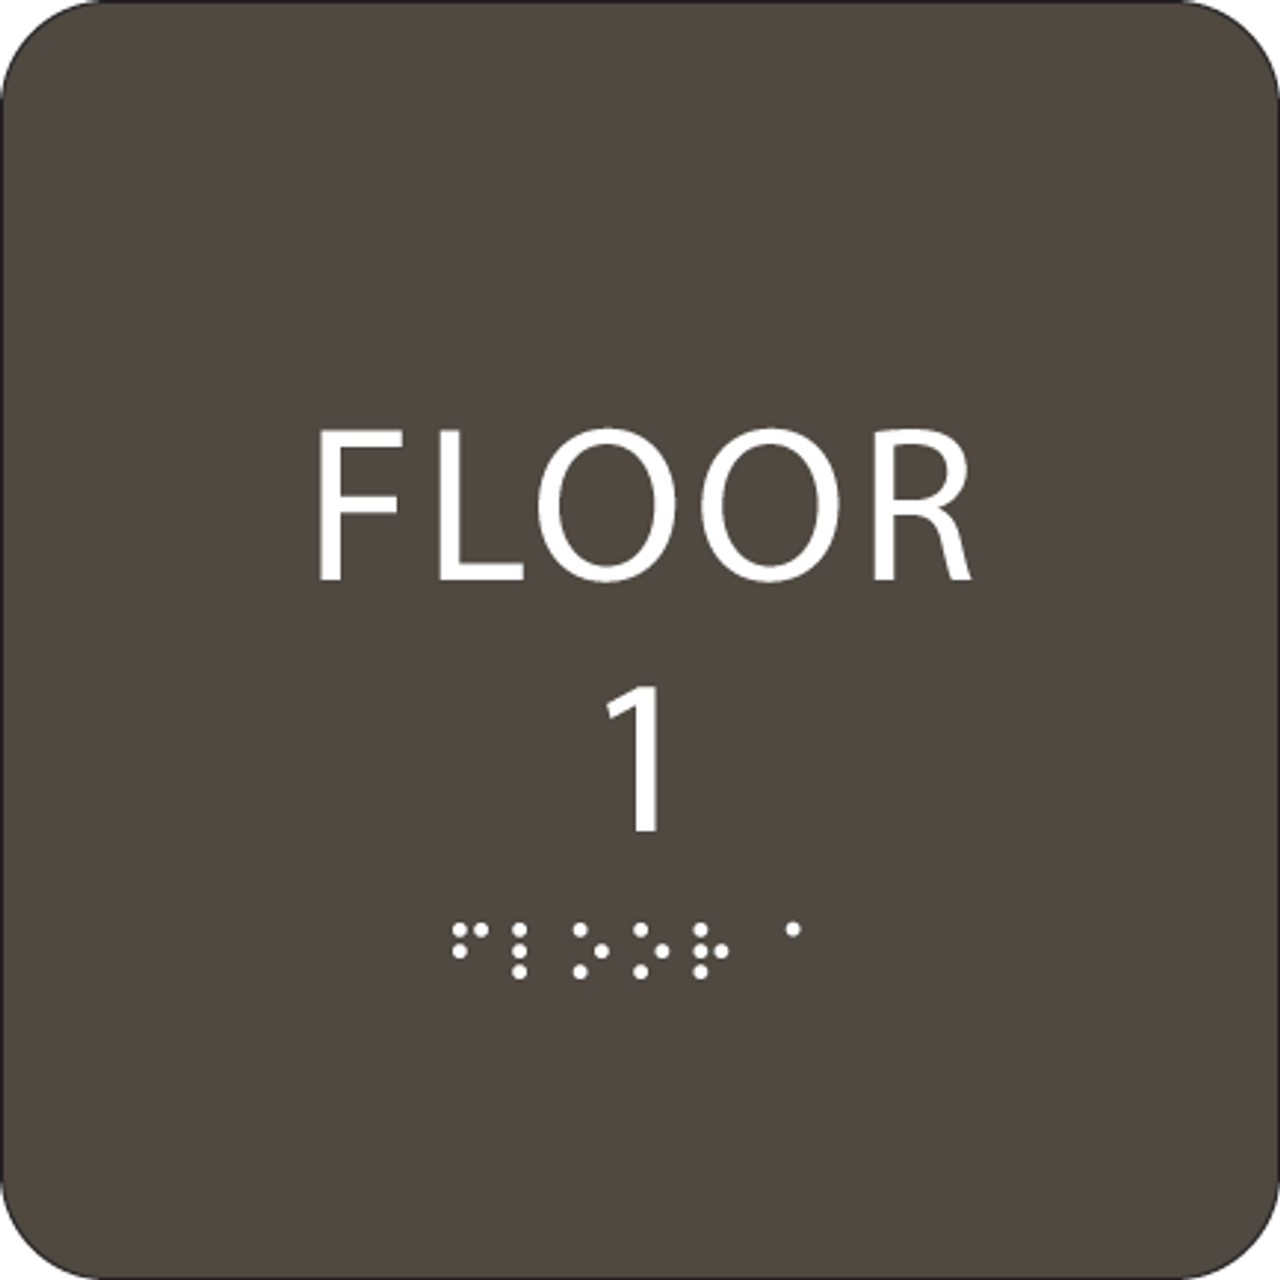 Olive Floor 1 Identification Sign